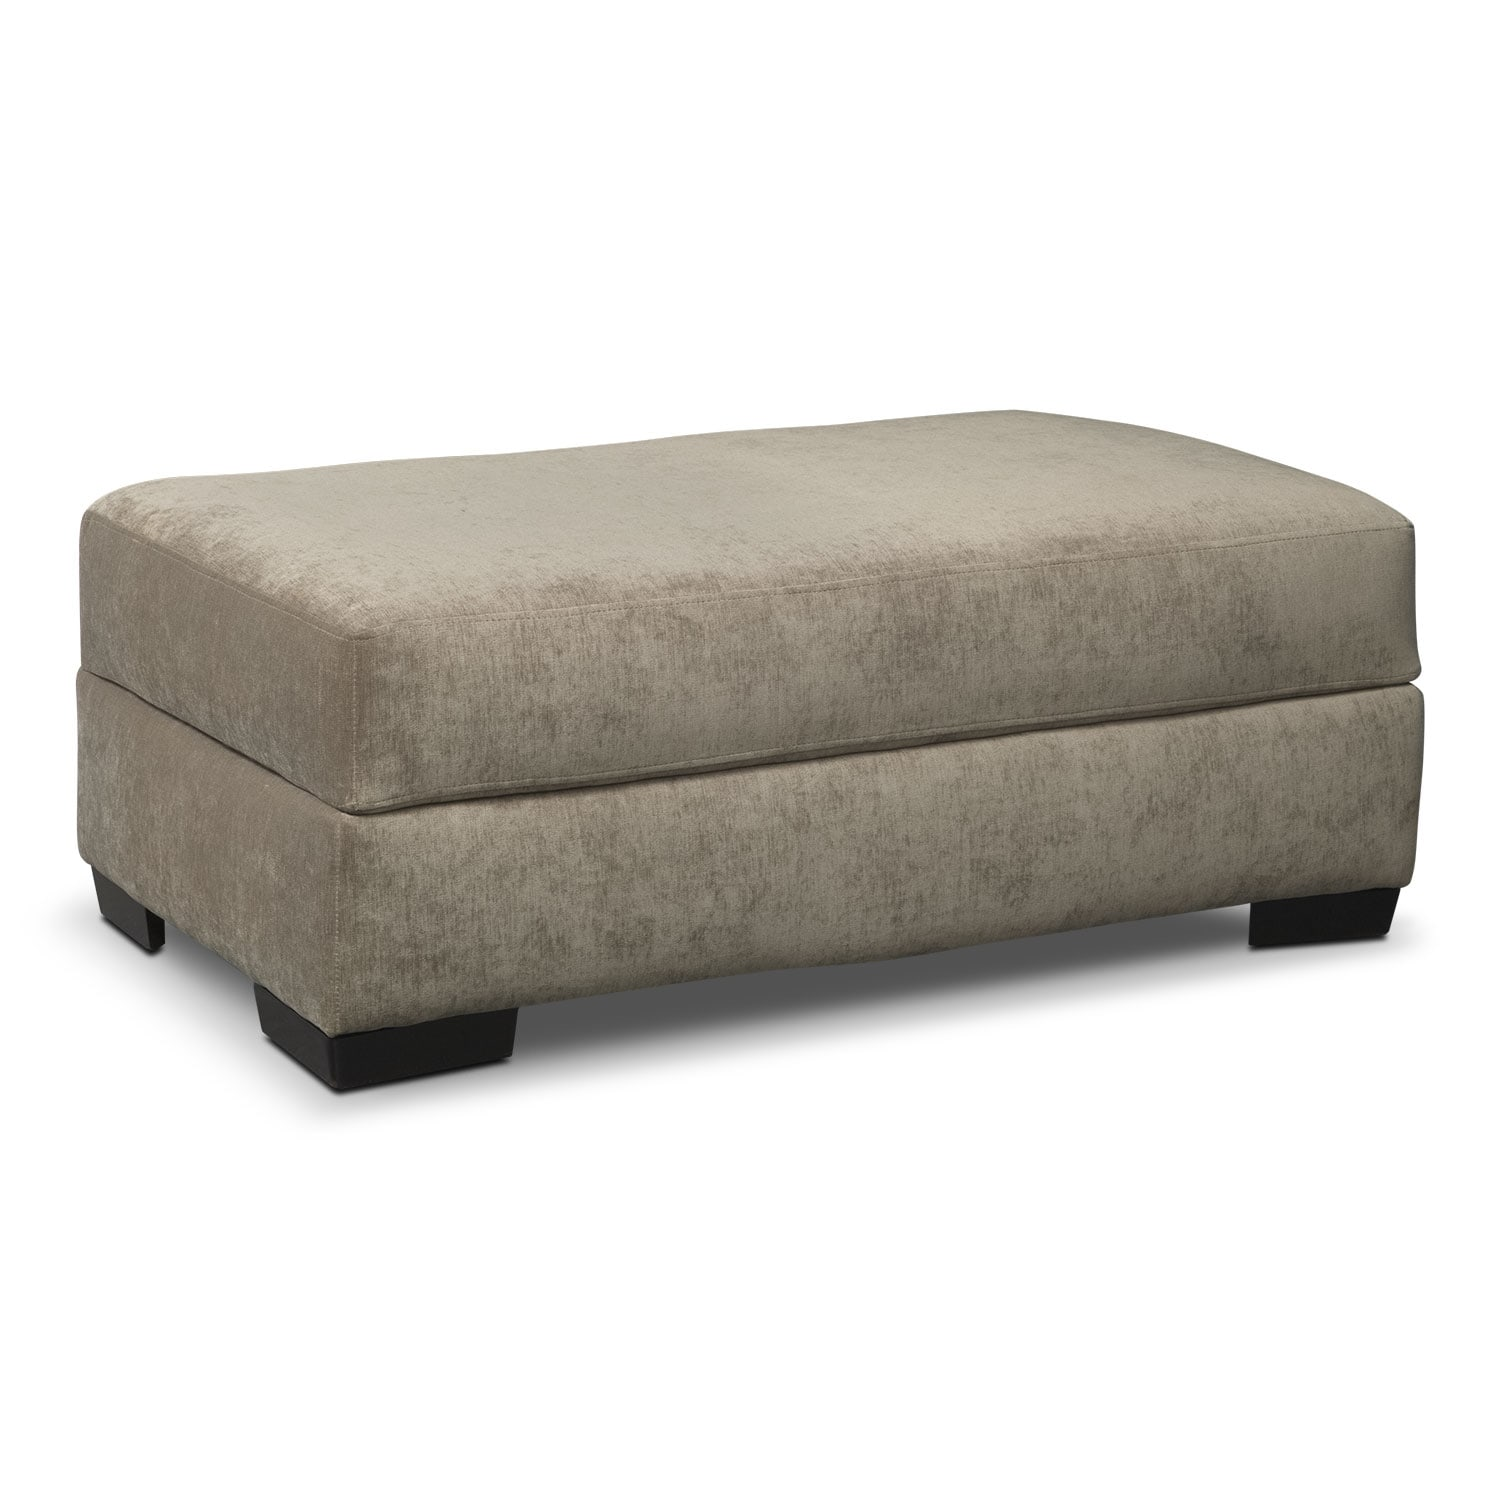 Living Room Furniture - Tempo Ottoman